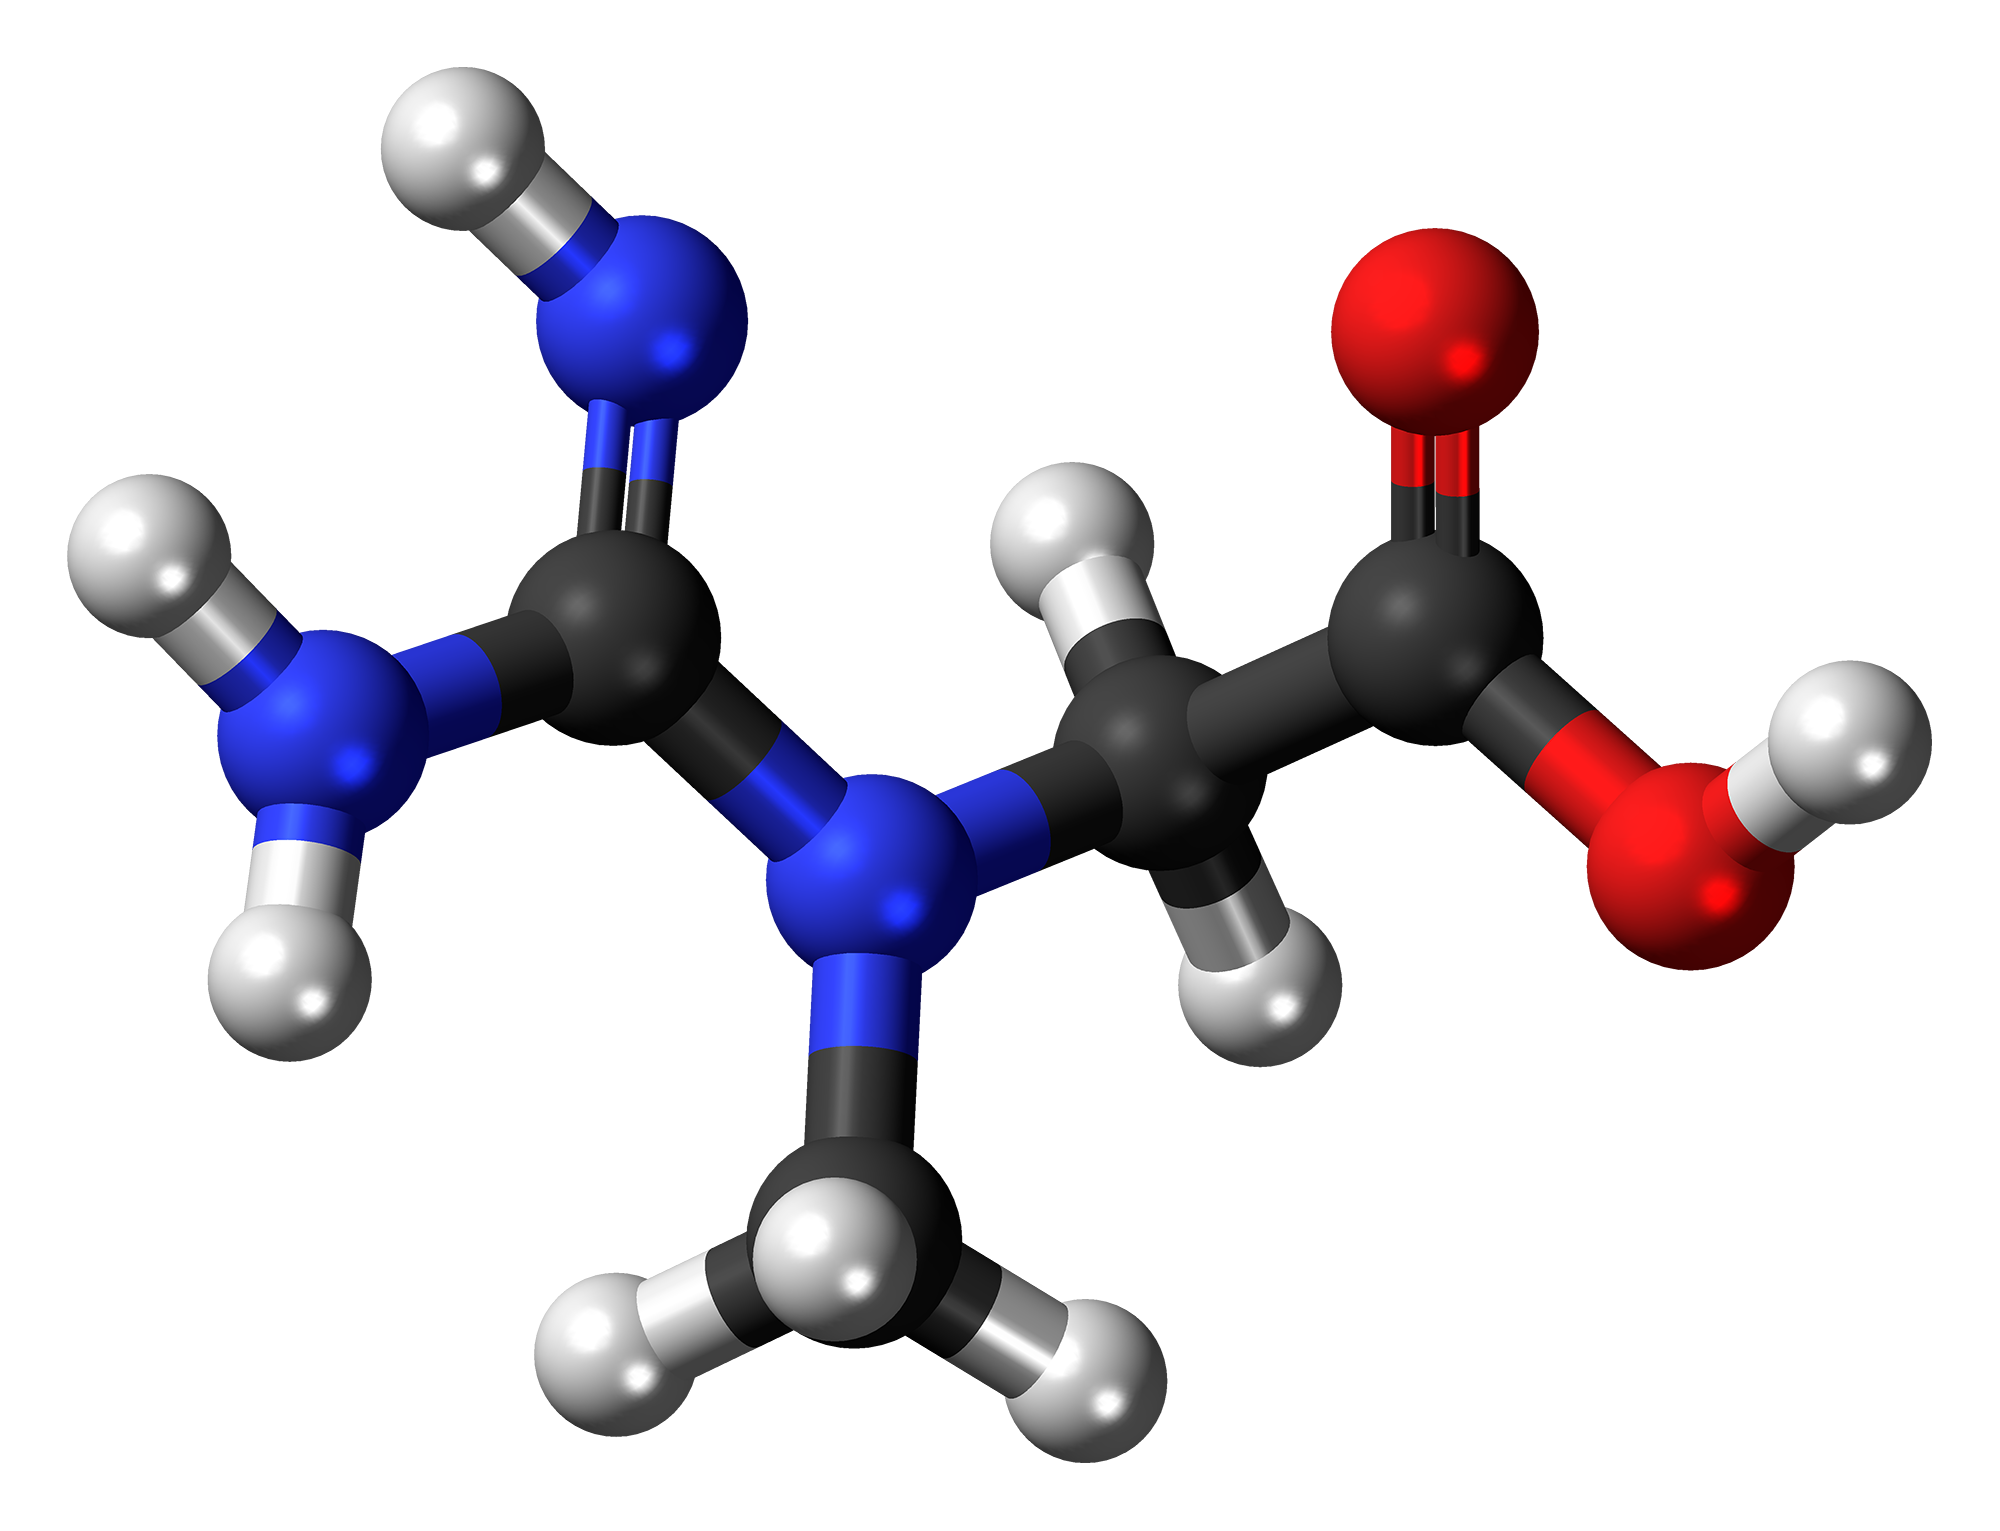 hard-rhino-creatine-molecule-ball.png